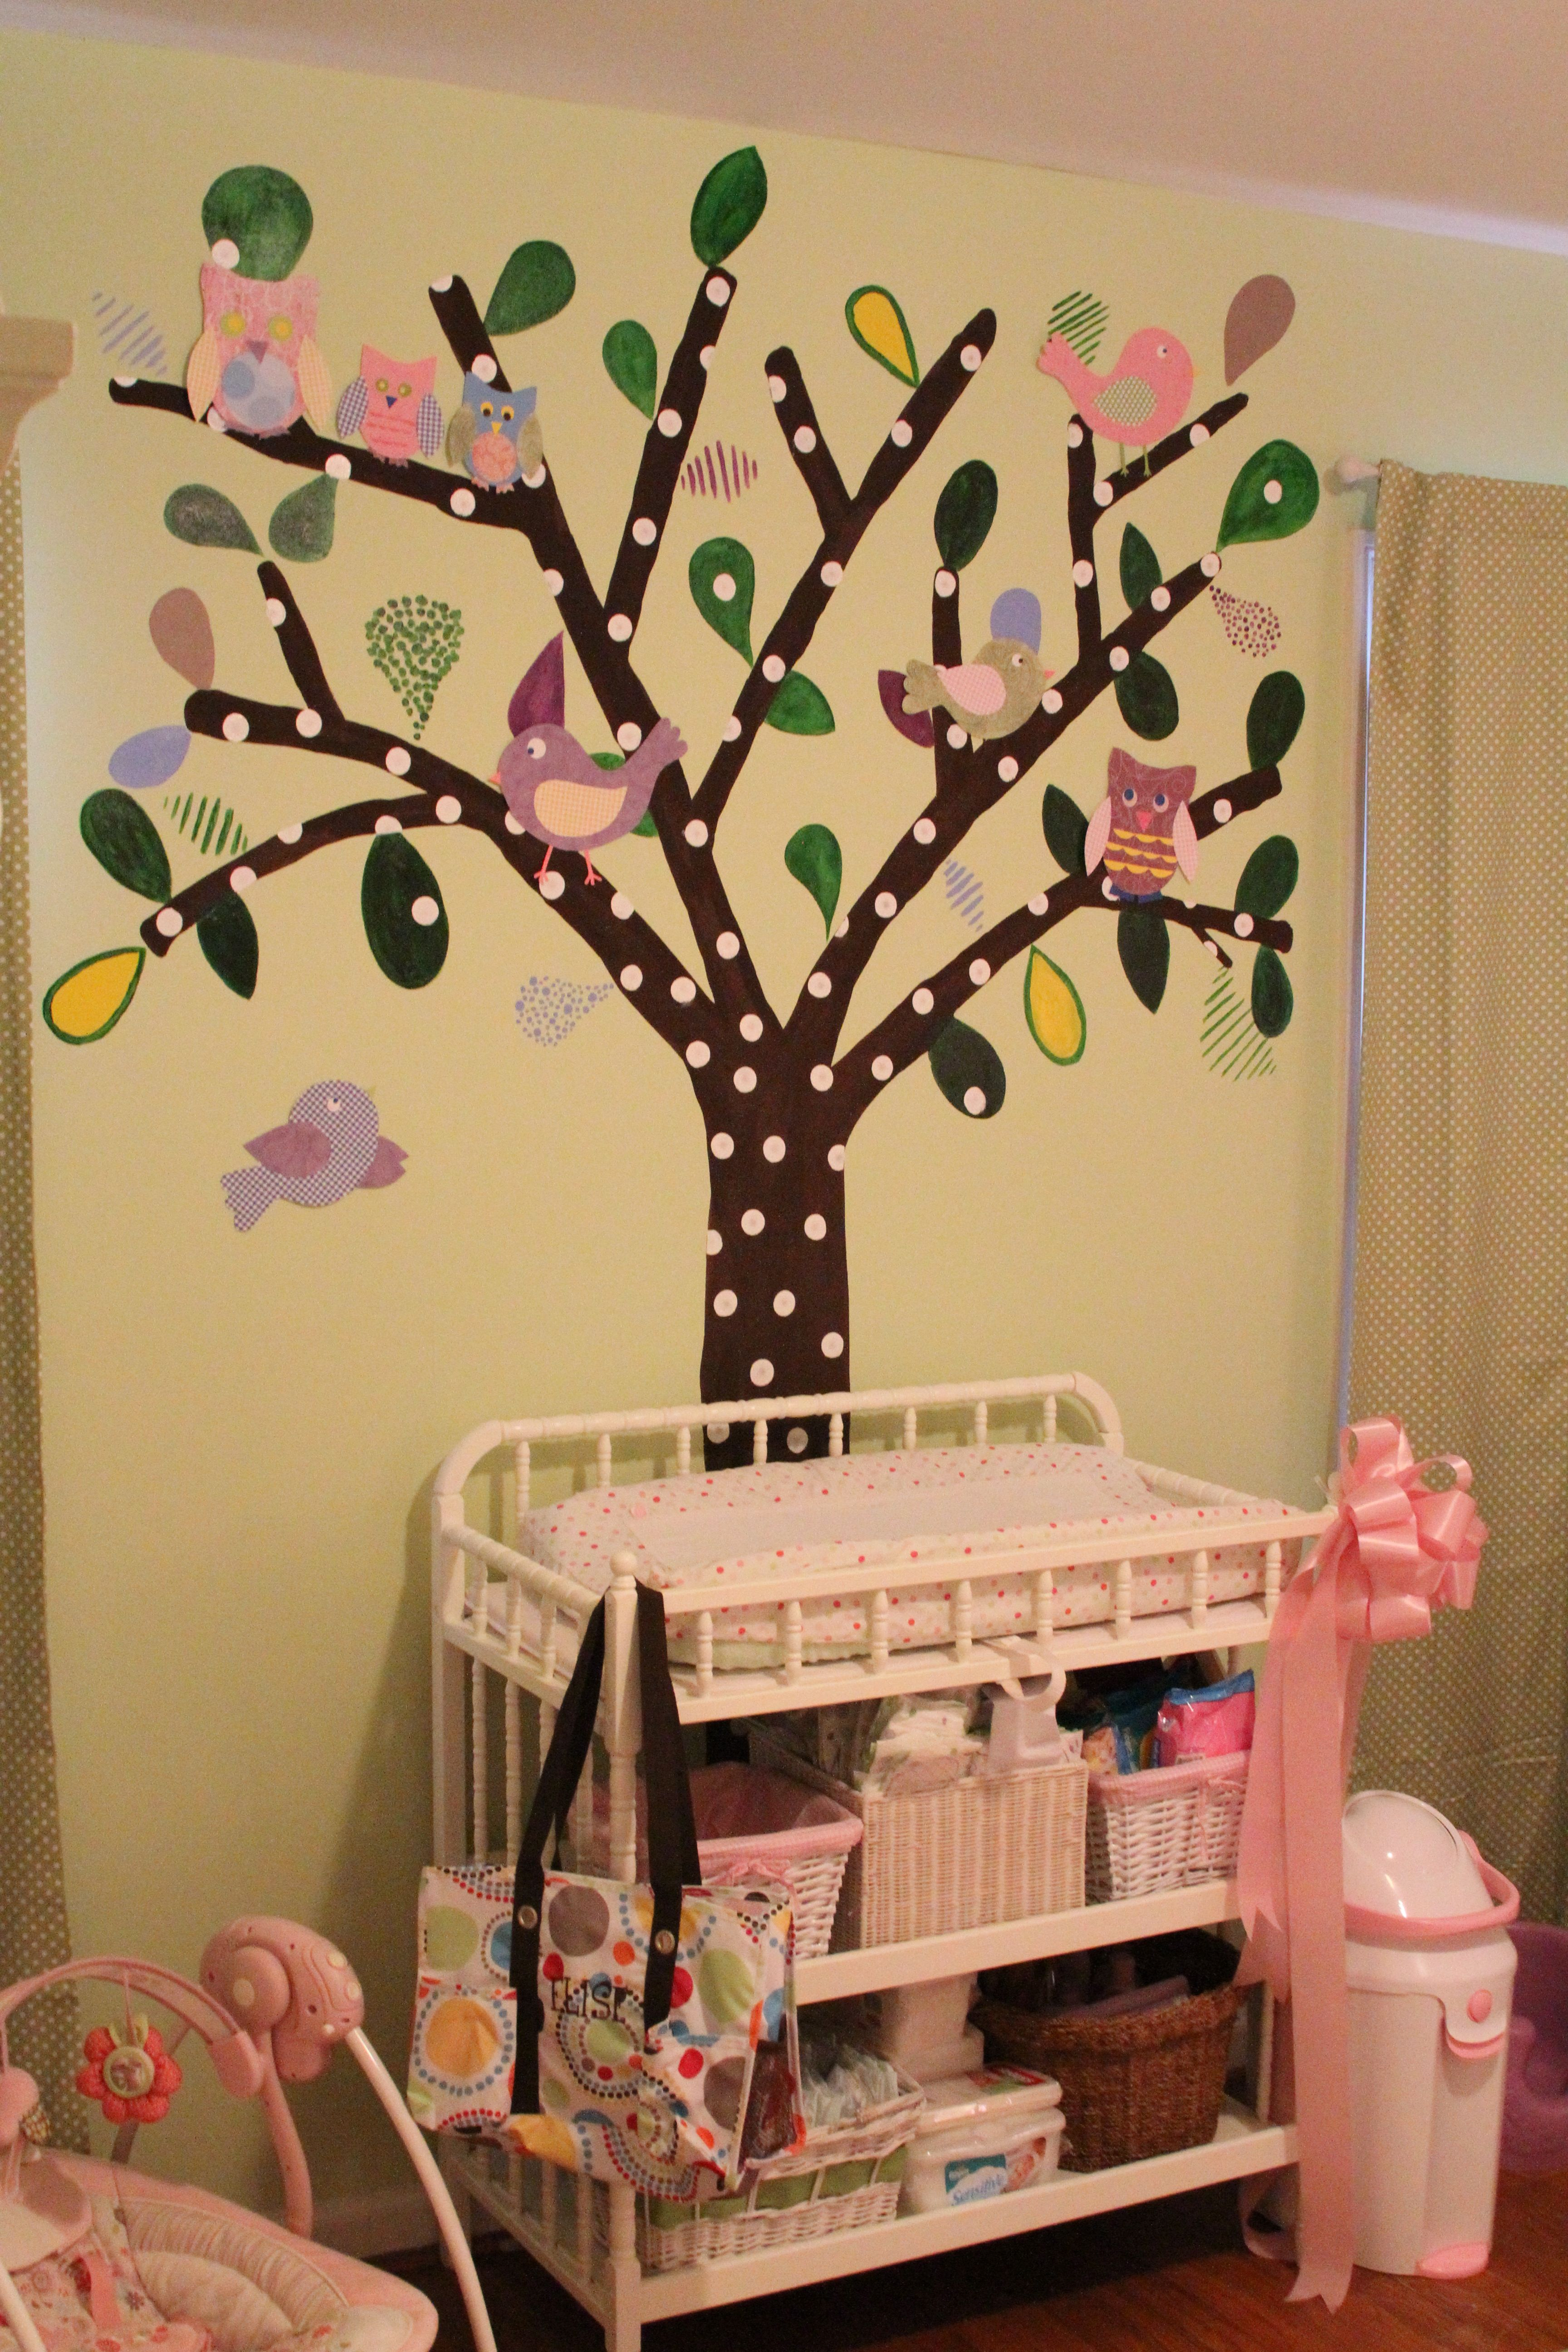 Sharing this one.  My wife and i painted the tree on the wall and then made the owls and birds with scrapbooking paper during the tornadoes last April.  We based it off of our pottery barn crib bedding.